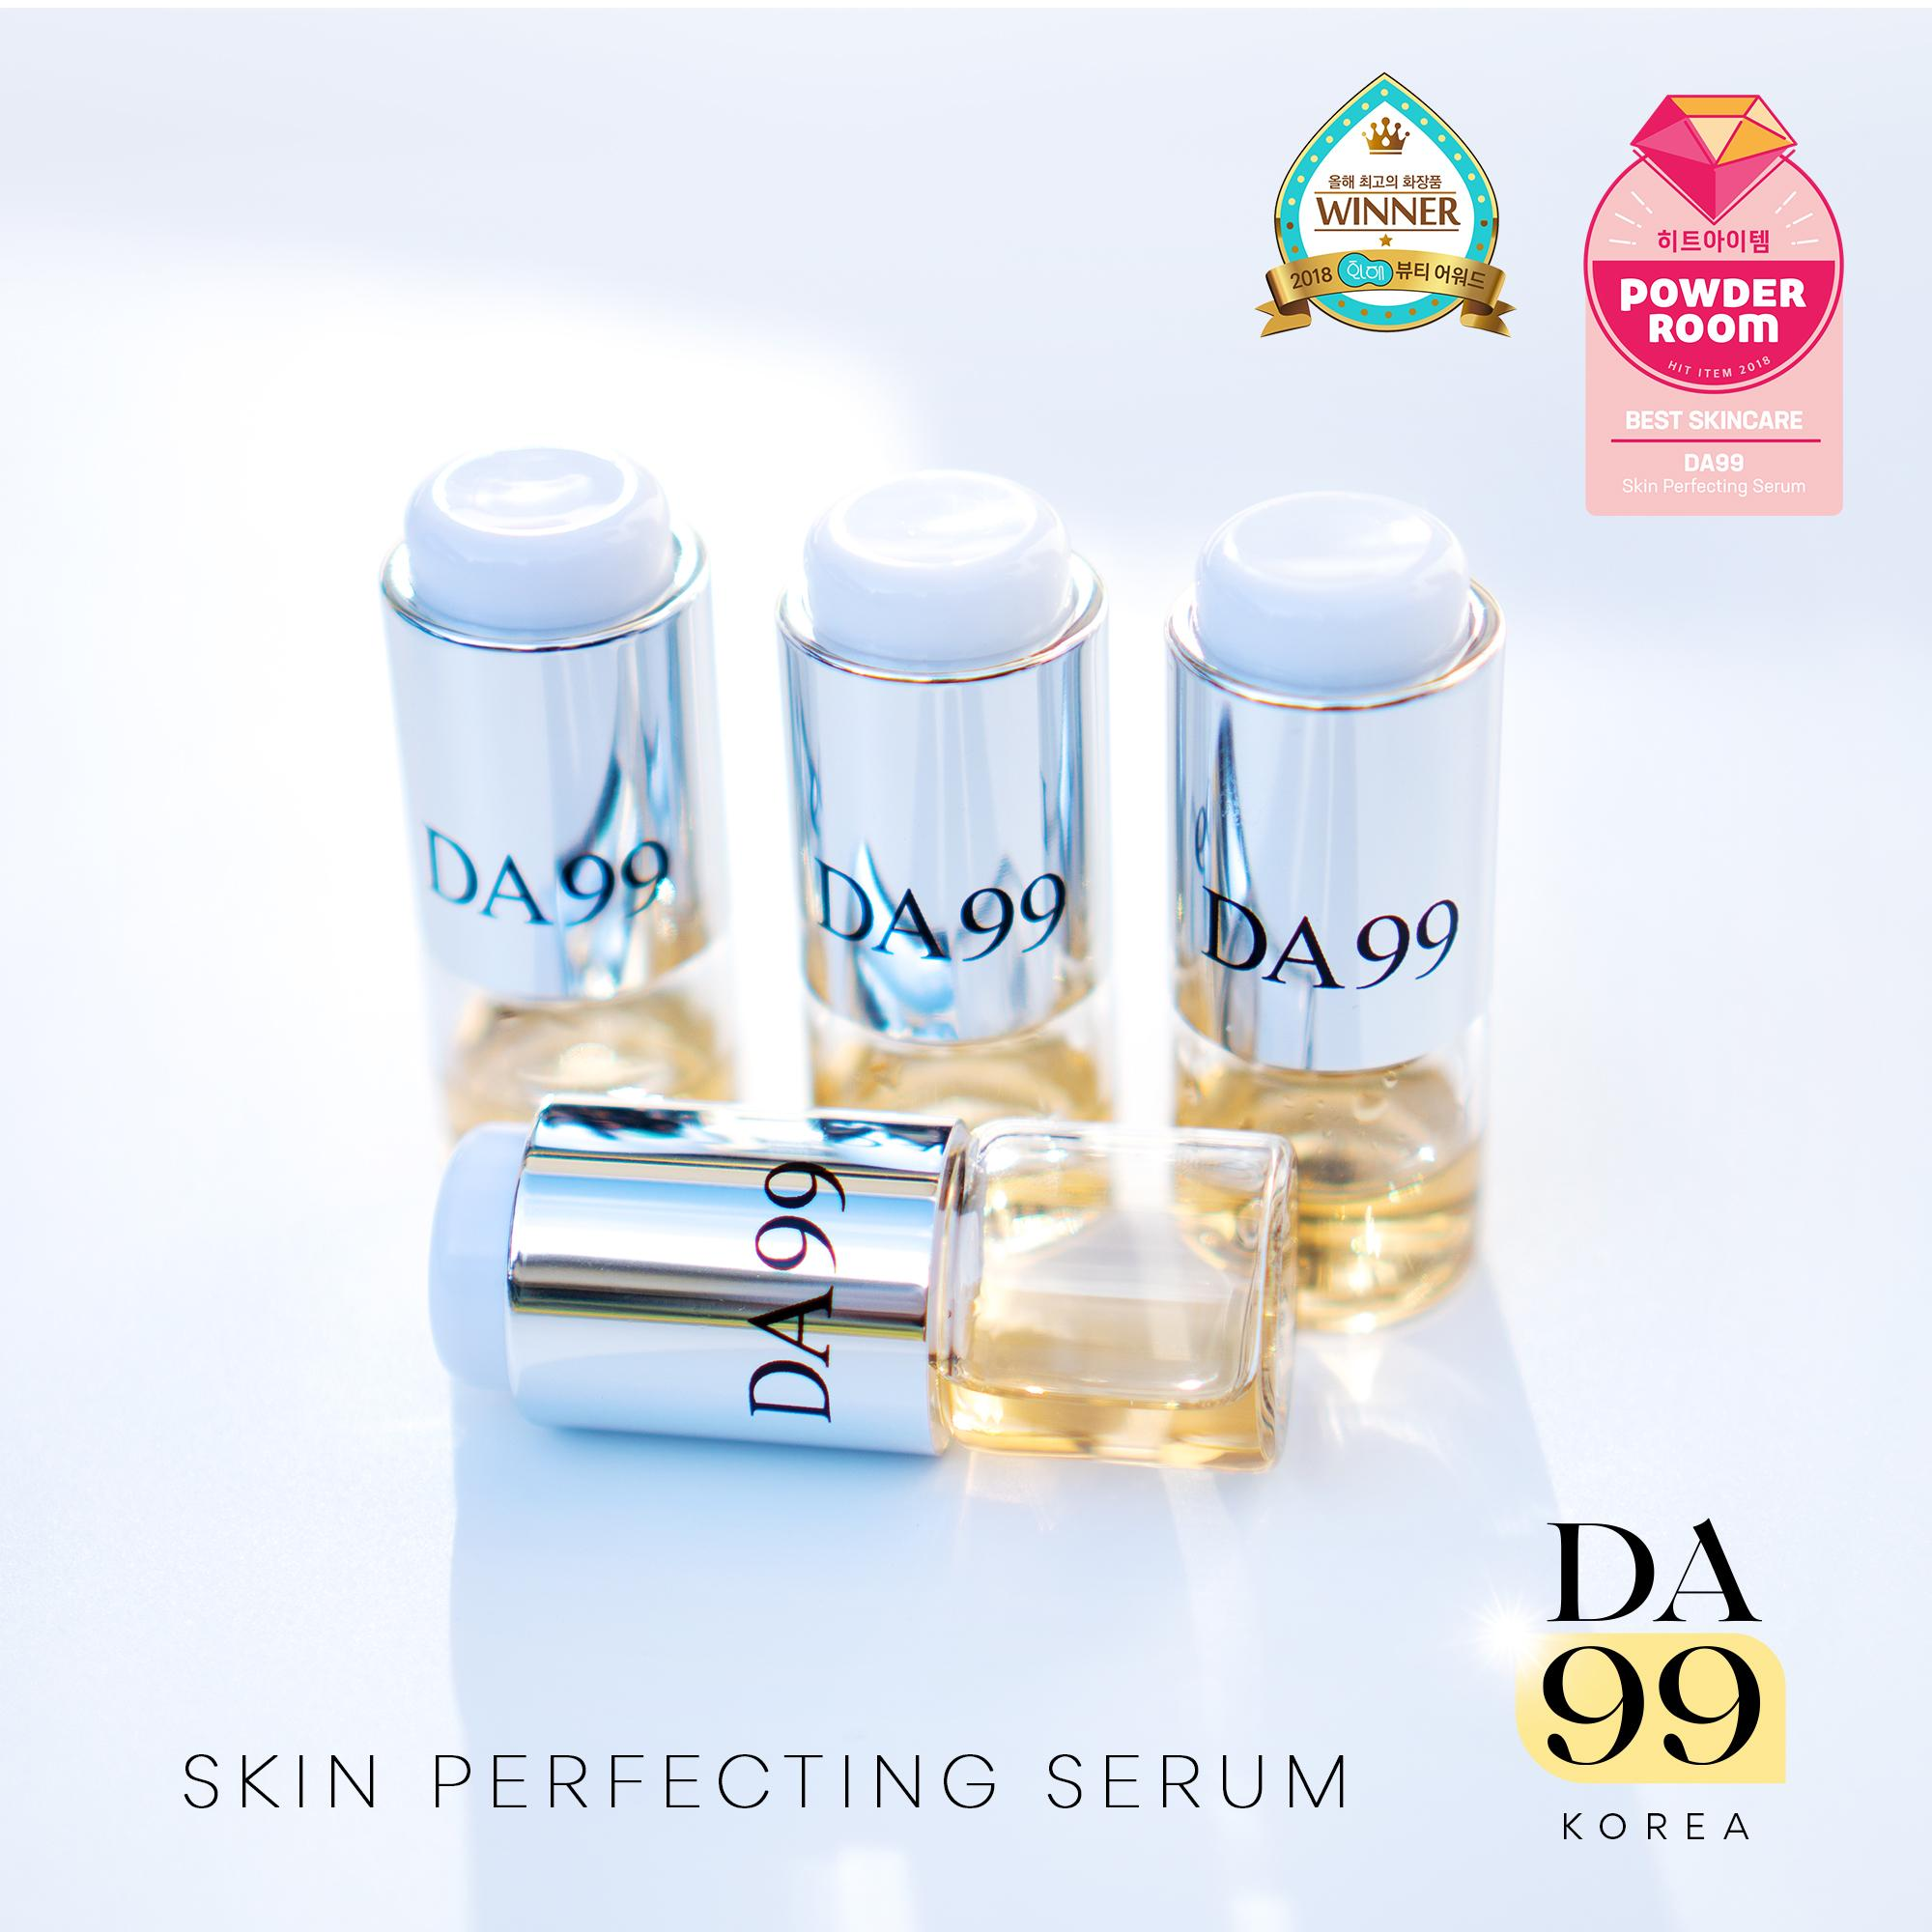 DA99 Skin Perfecting Serum · 4 Ampoule Set · Derma Session at Home ❤️ ·  Better than Botox / Vitamin Infusion · Key Ingredient Discovered by NASA ·